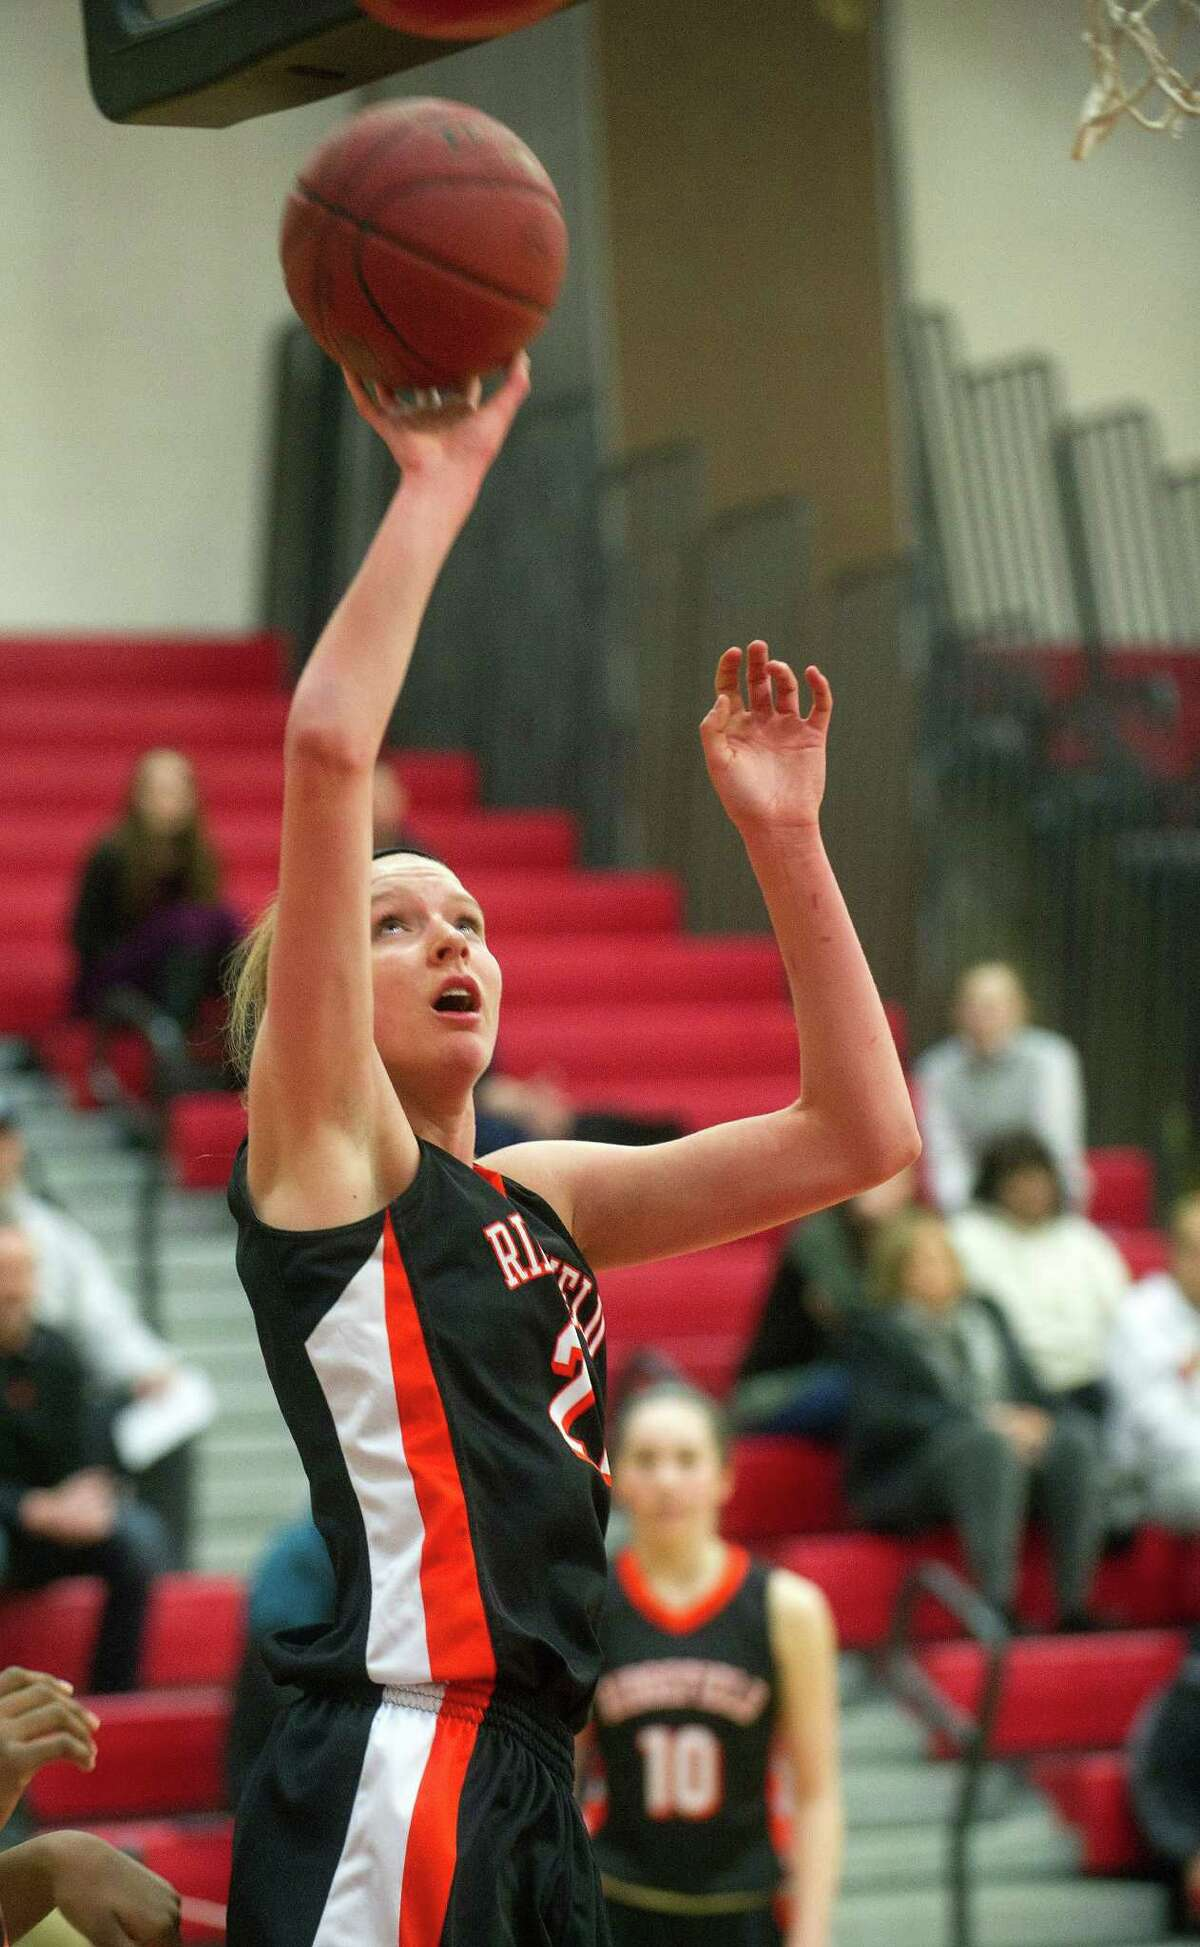 Ridgefield: Junior forward  Rebecca Lawrence averaged 15.0 points and 10.0 rebounds and was named FCIAC tournament MVP for the Tigers, who won the league title and reached the Class LL second round.